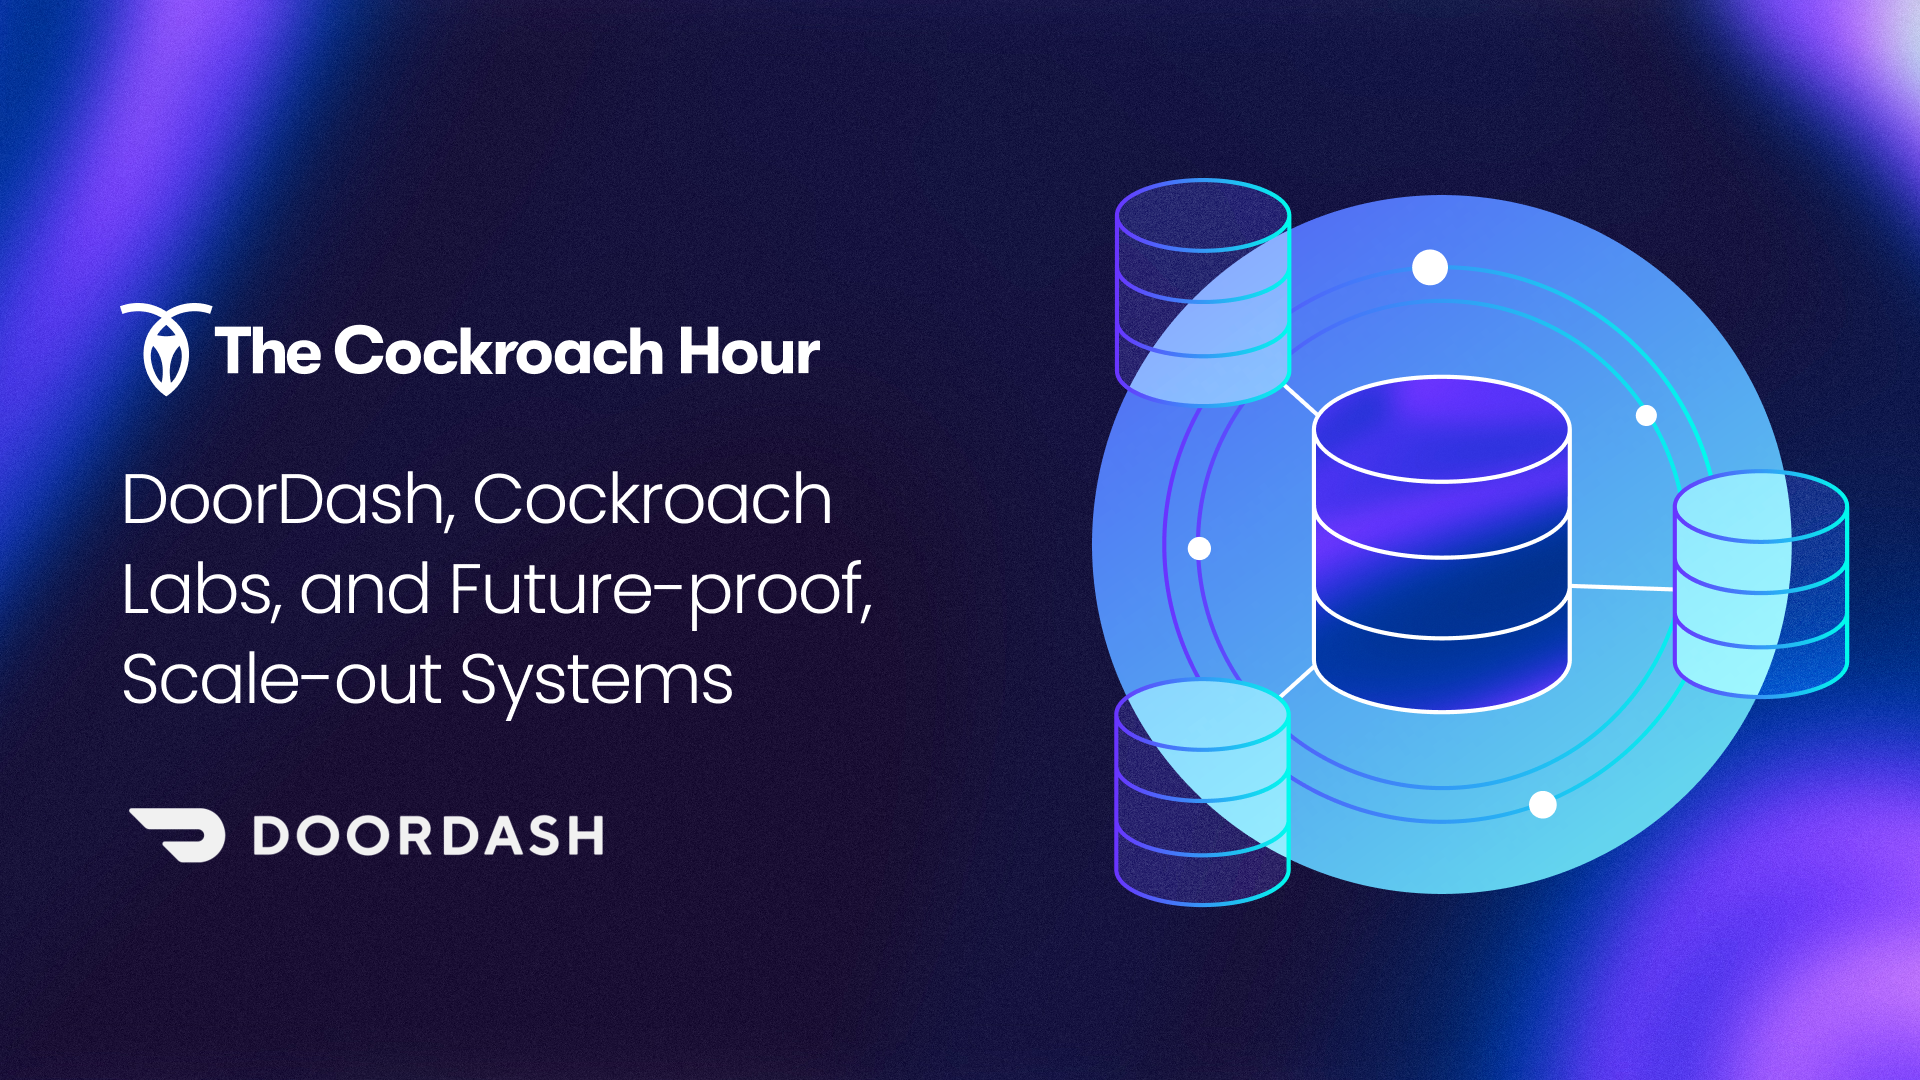 The Cockroach Hour: DoorDash, Cockroach Labs, and future-proof, scale-out systems